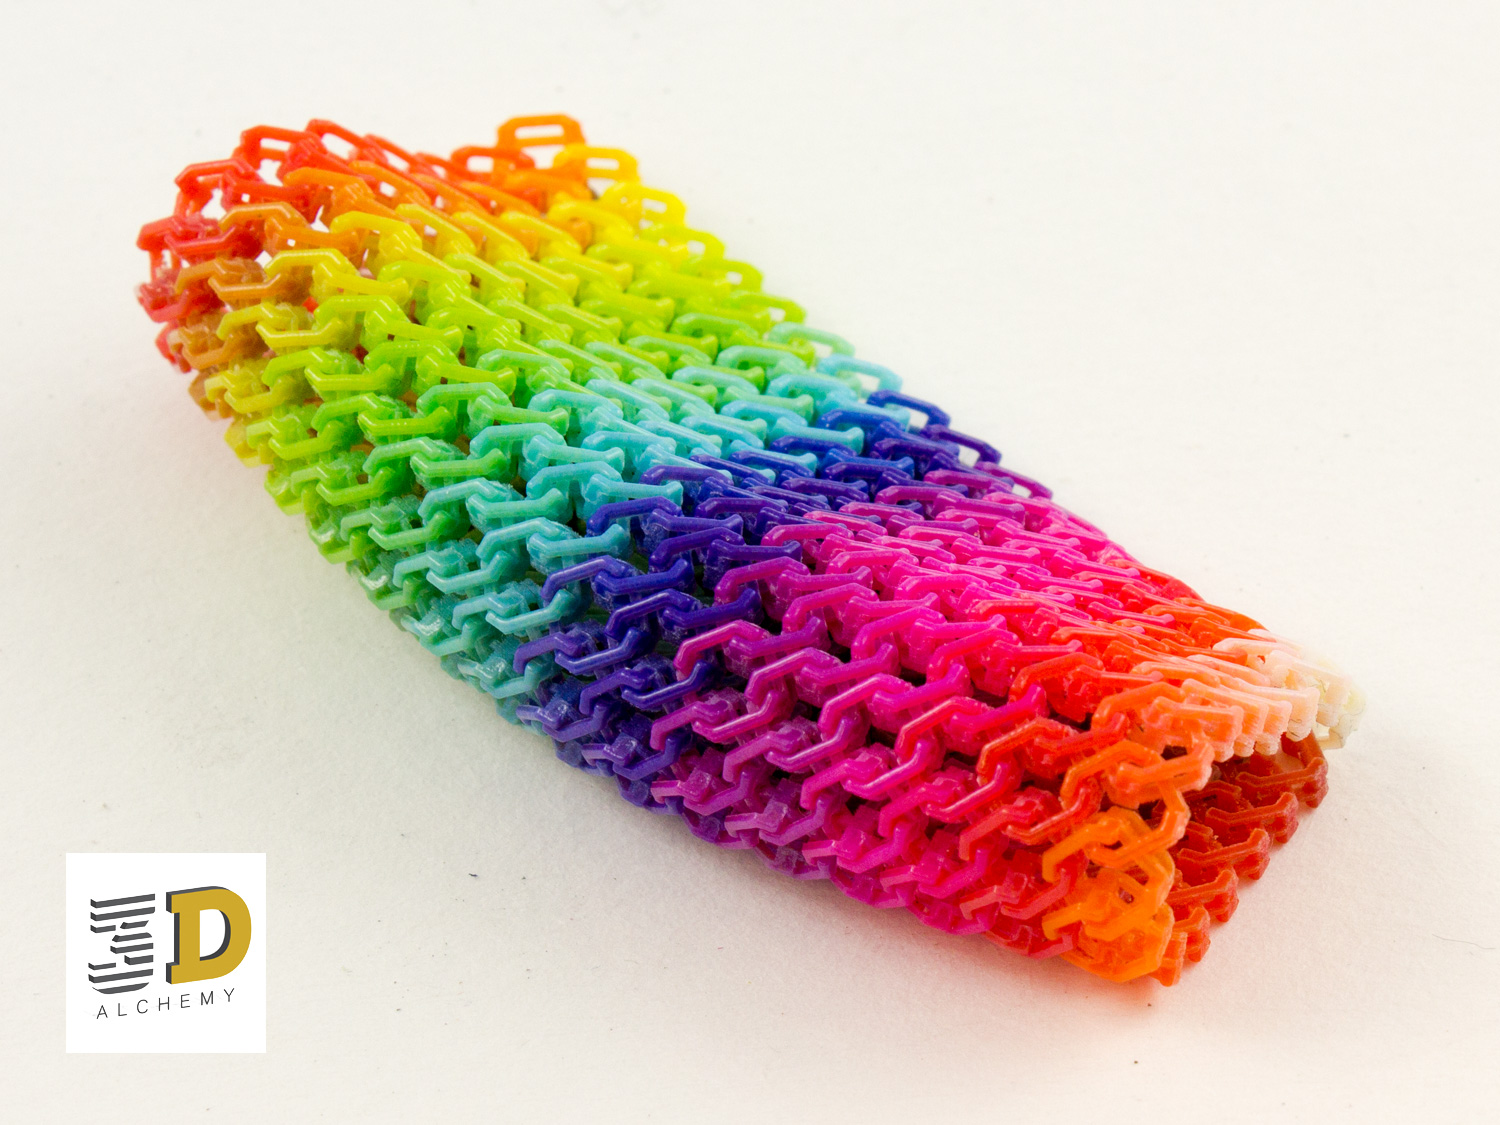 Chain mail, full spectrum colour 3d print.